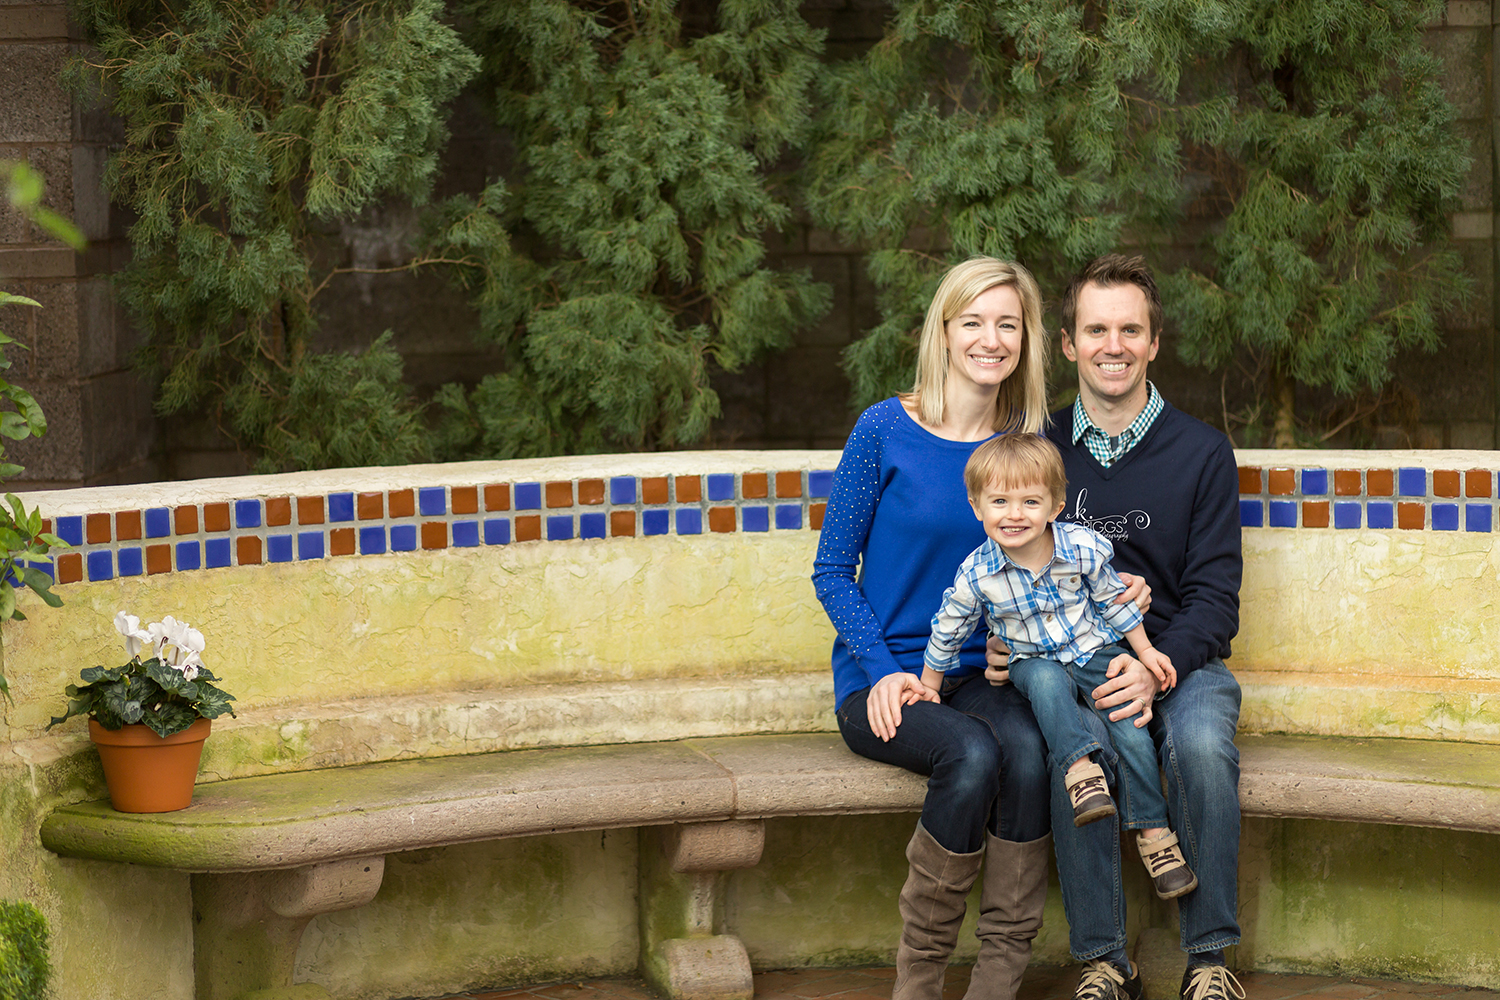 Family of 3 sitting for photo - St. Louis Photographer